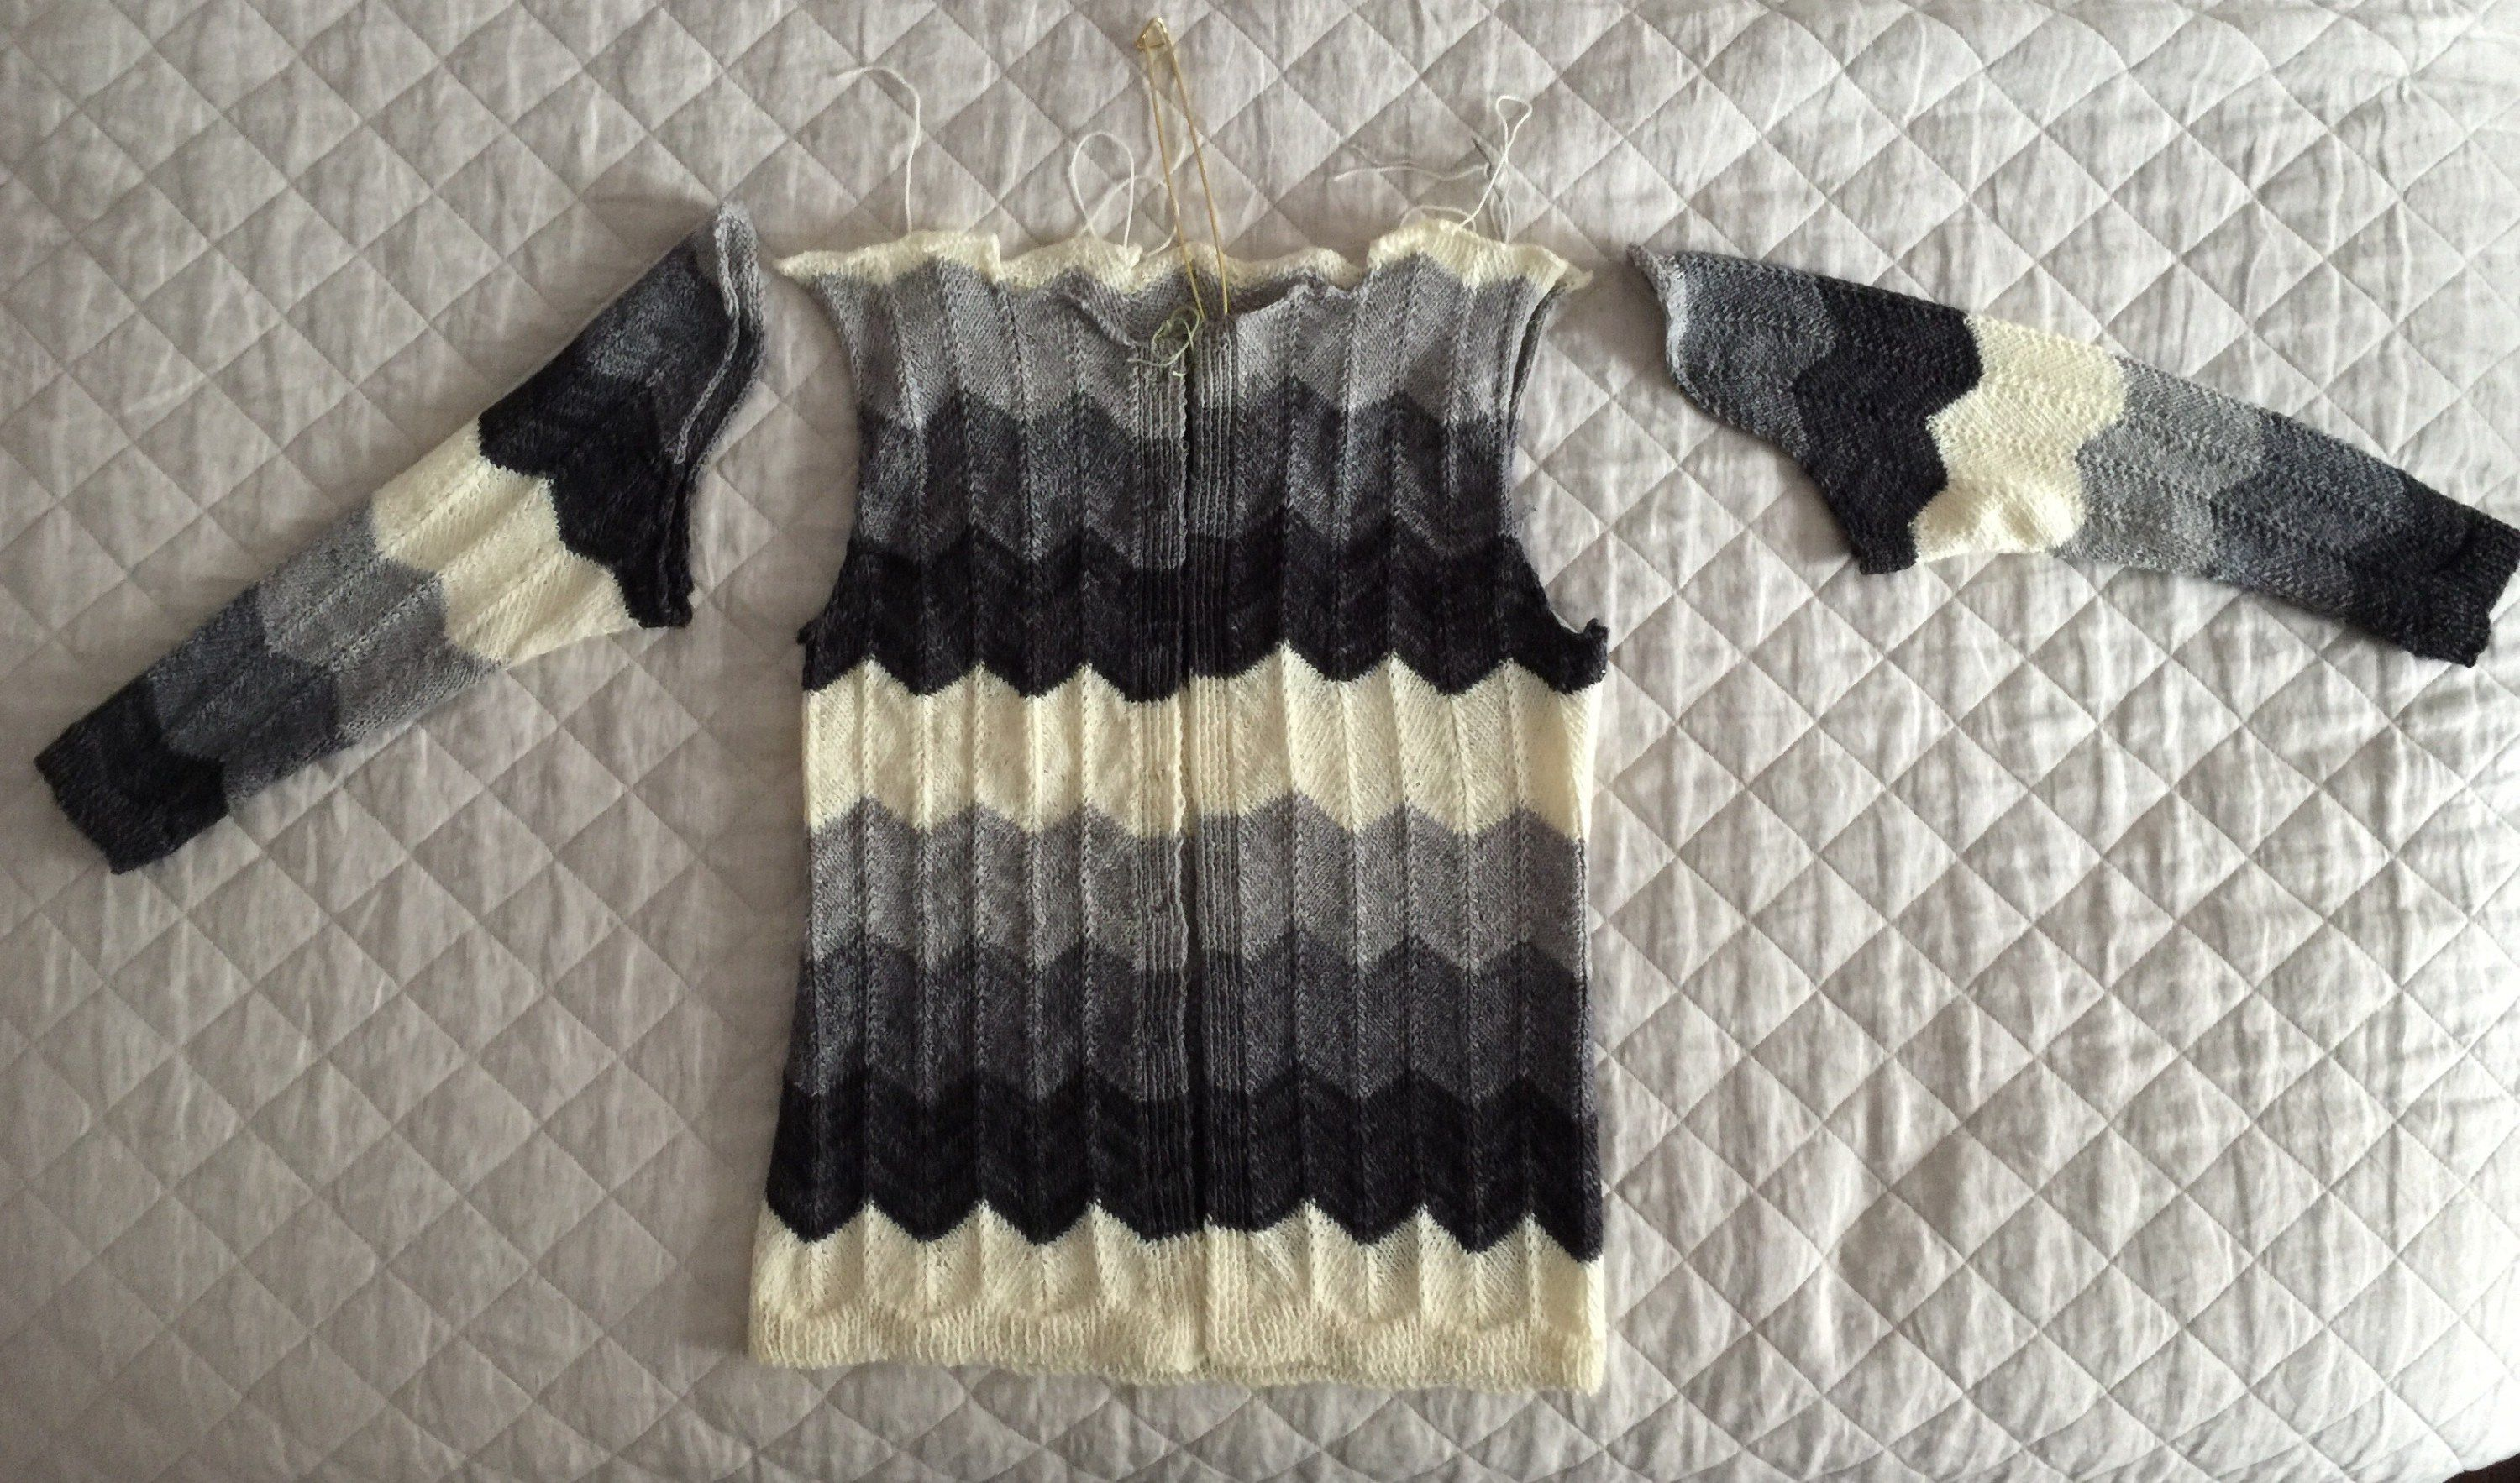 6b9d0f02b80b2a Setting knit sweater sleeves with Clover wonder clips